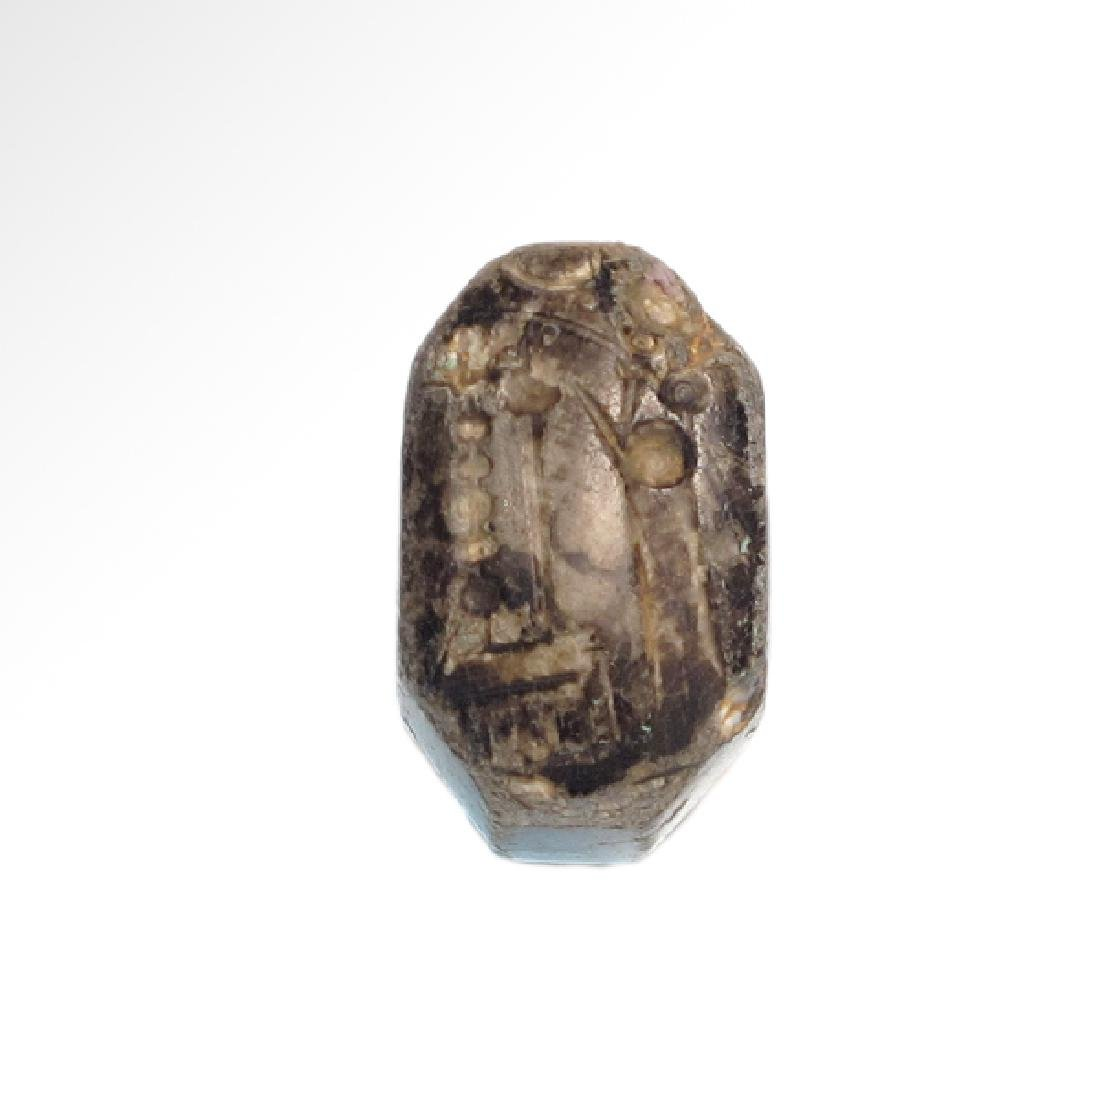 Agate Neo-Babylonian / Neo-Assyrian Stamp Seal, c. - 2